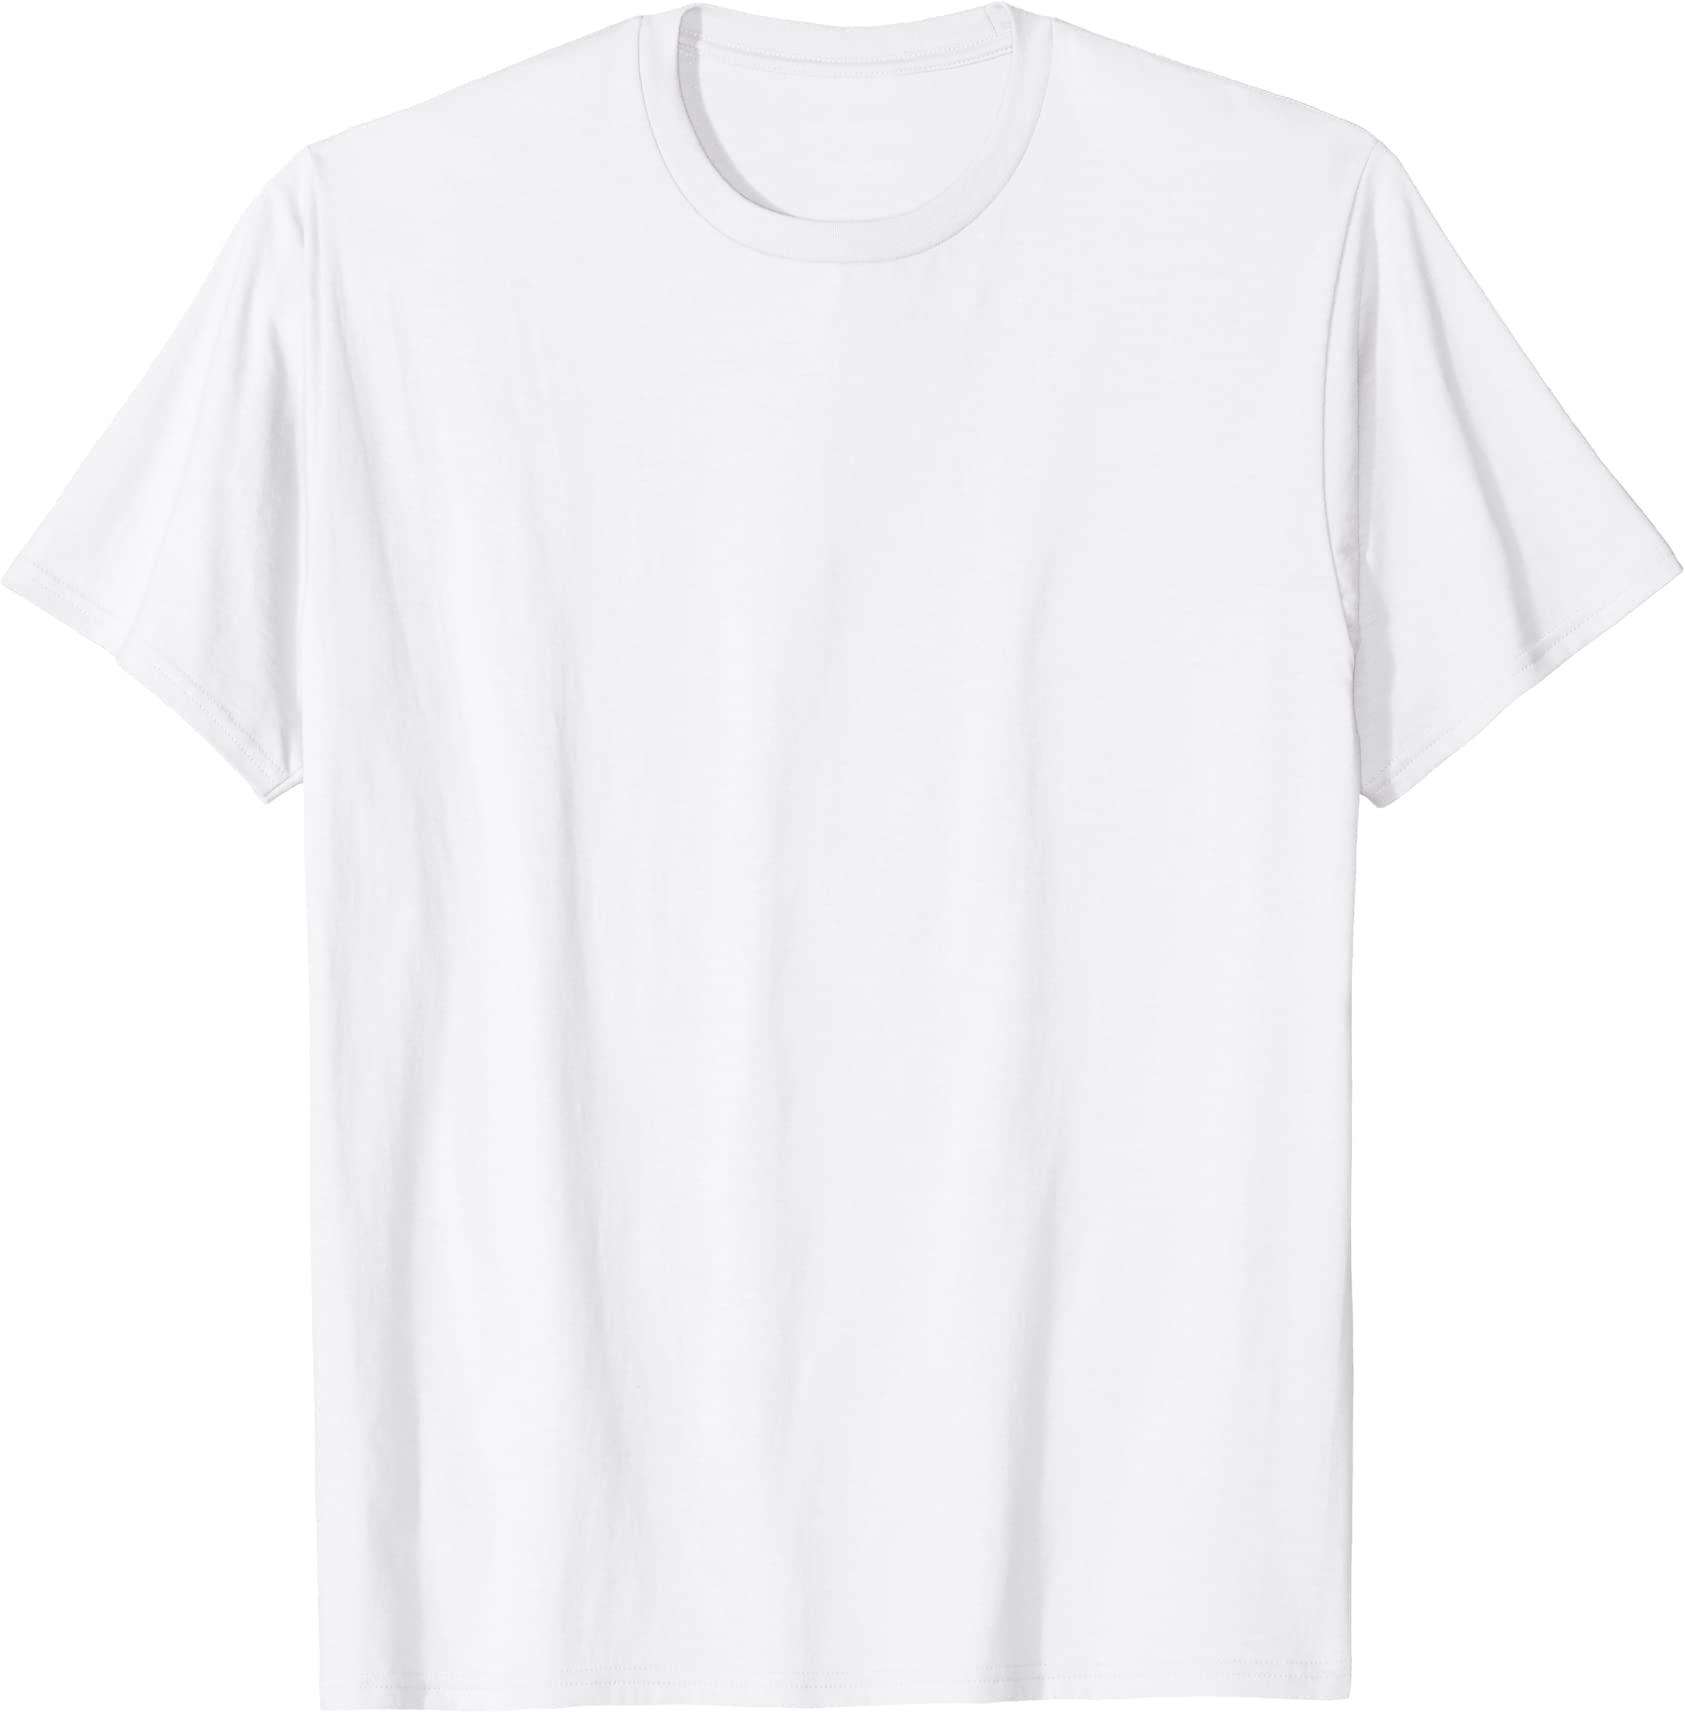 Roblox Oof T Shirt 4 Colors All Colours Sizes Children Kids Boys Girls New Kids Roblox Oof T Shirt